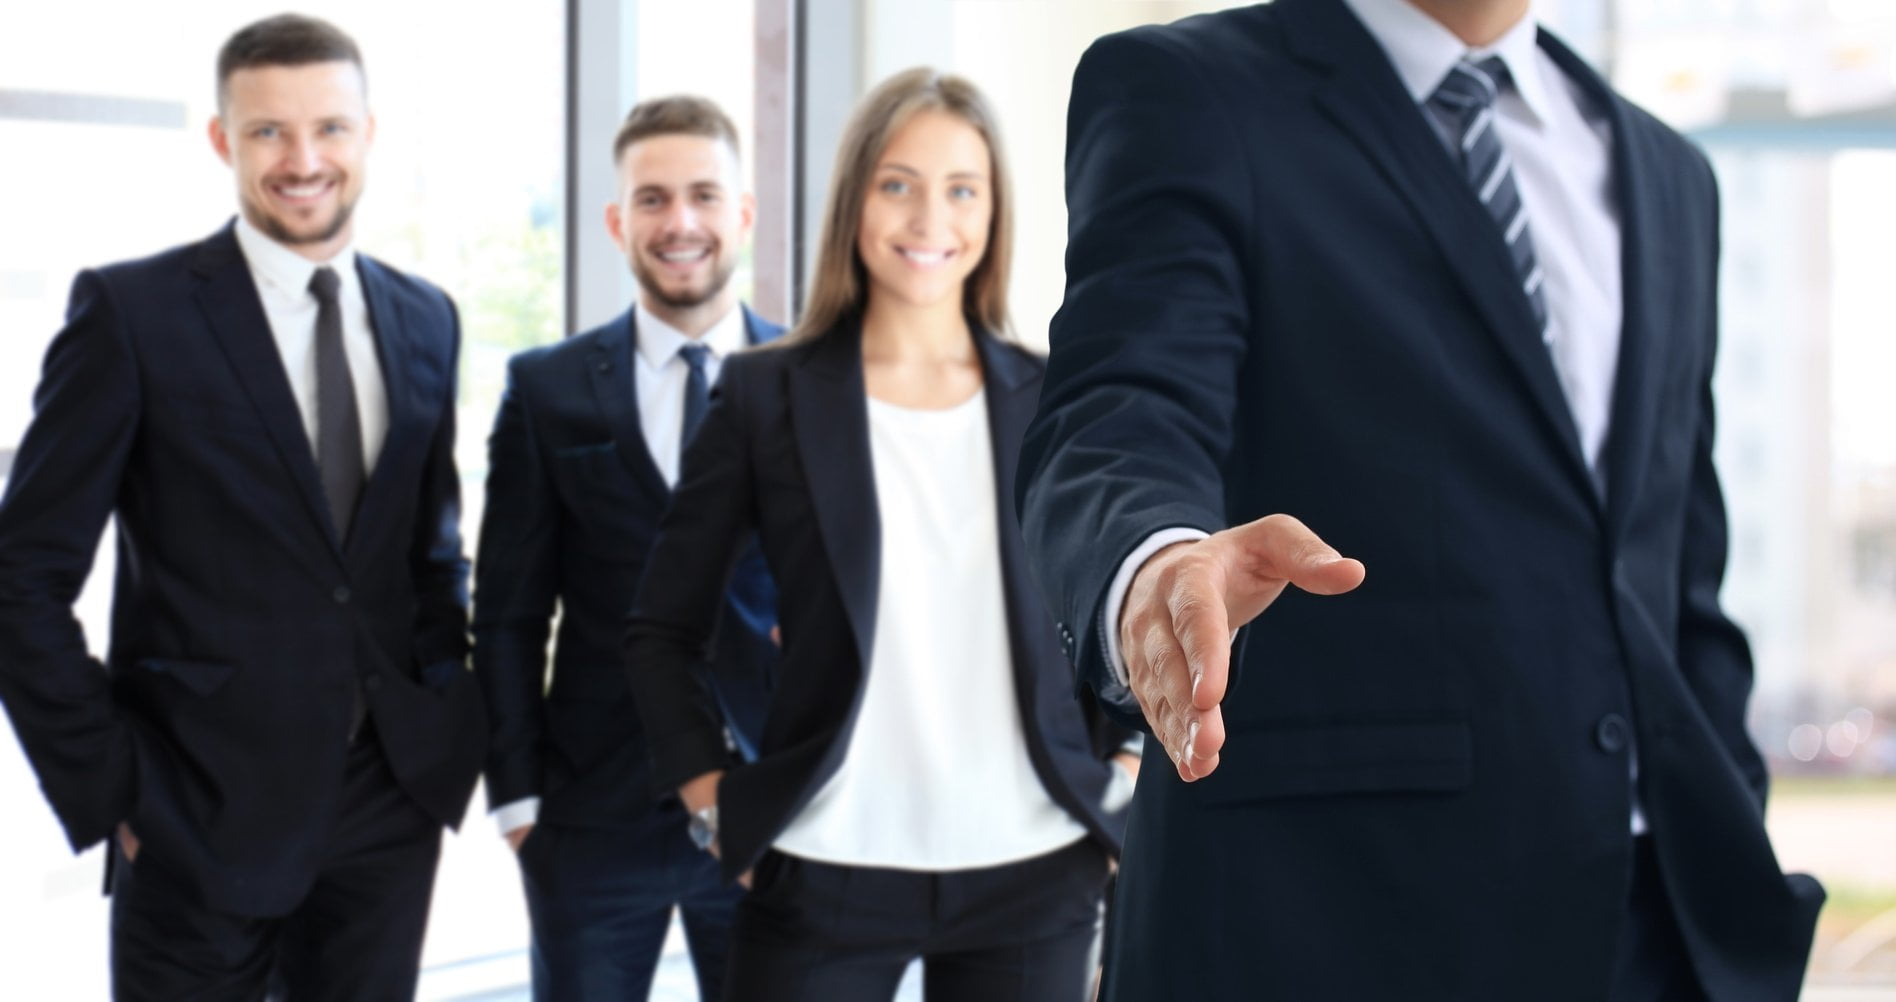 13 Techniques to Make New Employees Feel Welcome